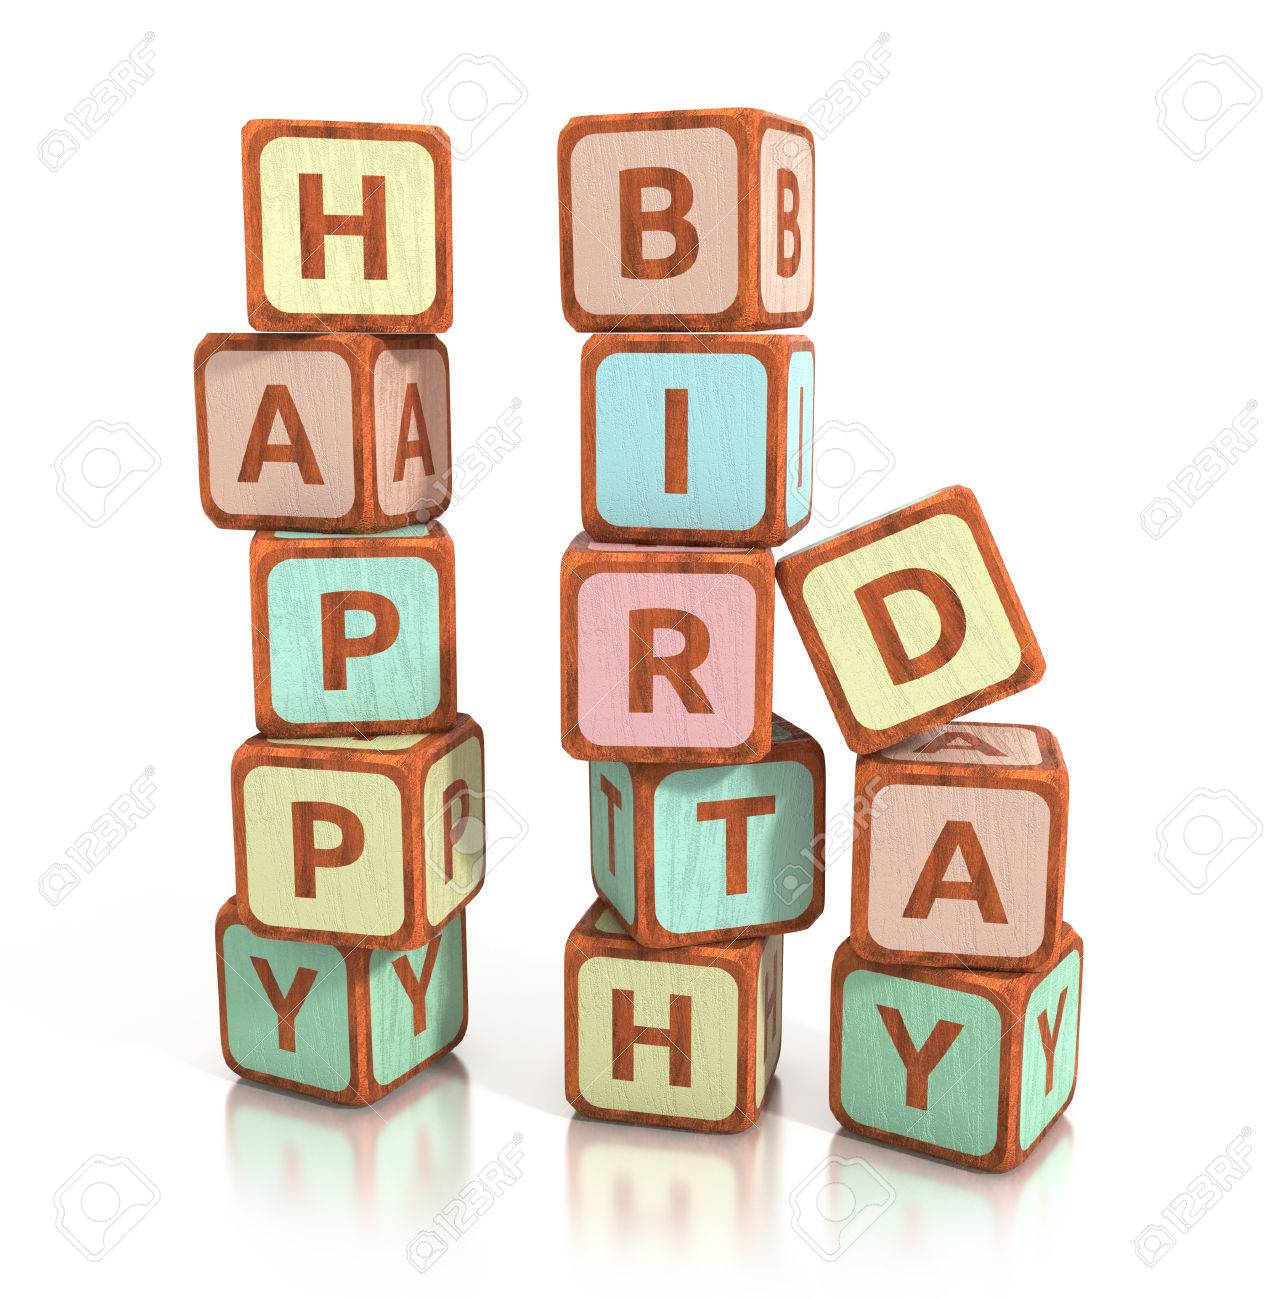 Wooden Blocks Spell Happy Birthday Isolated On White Background